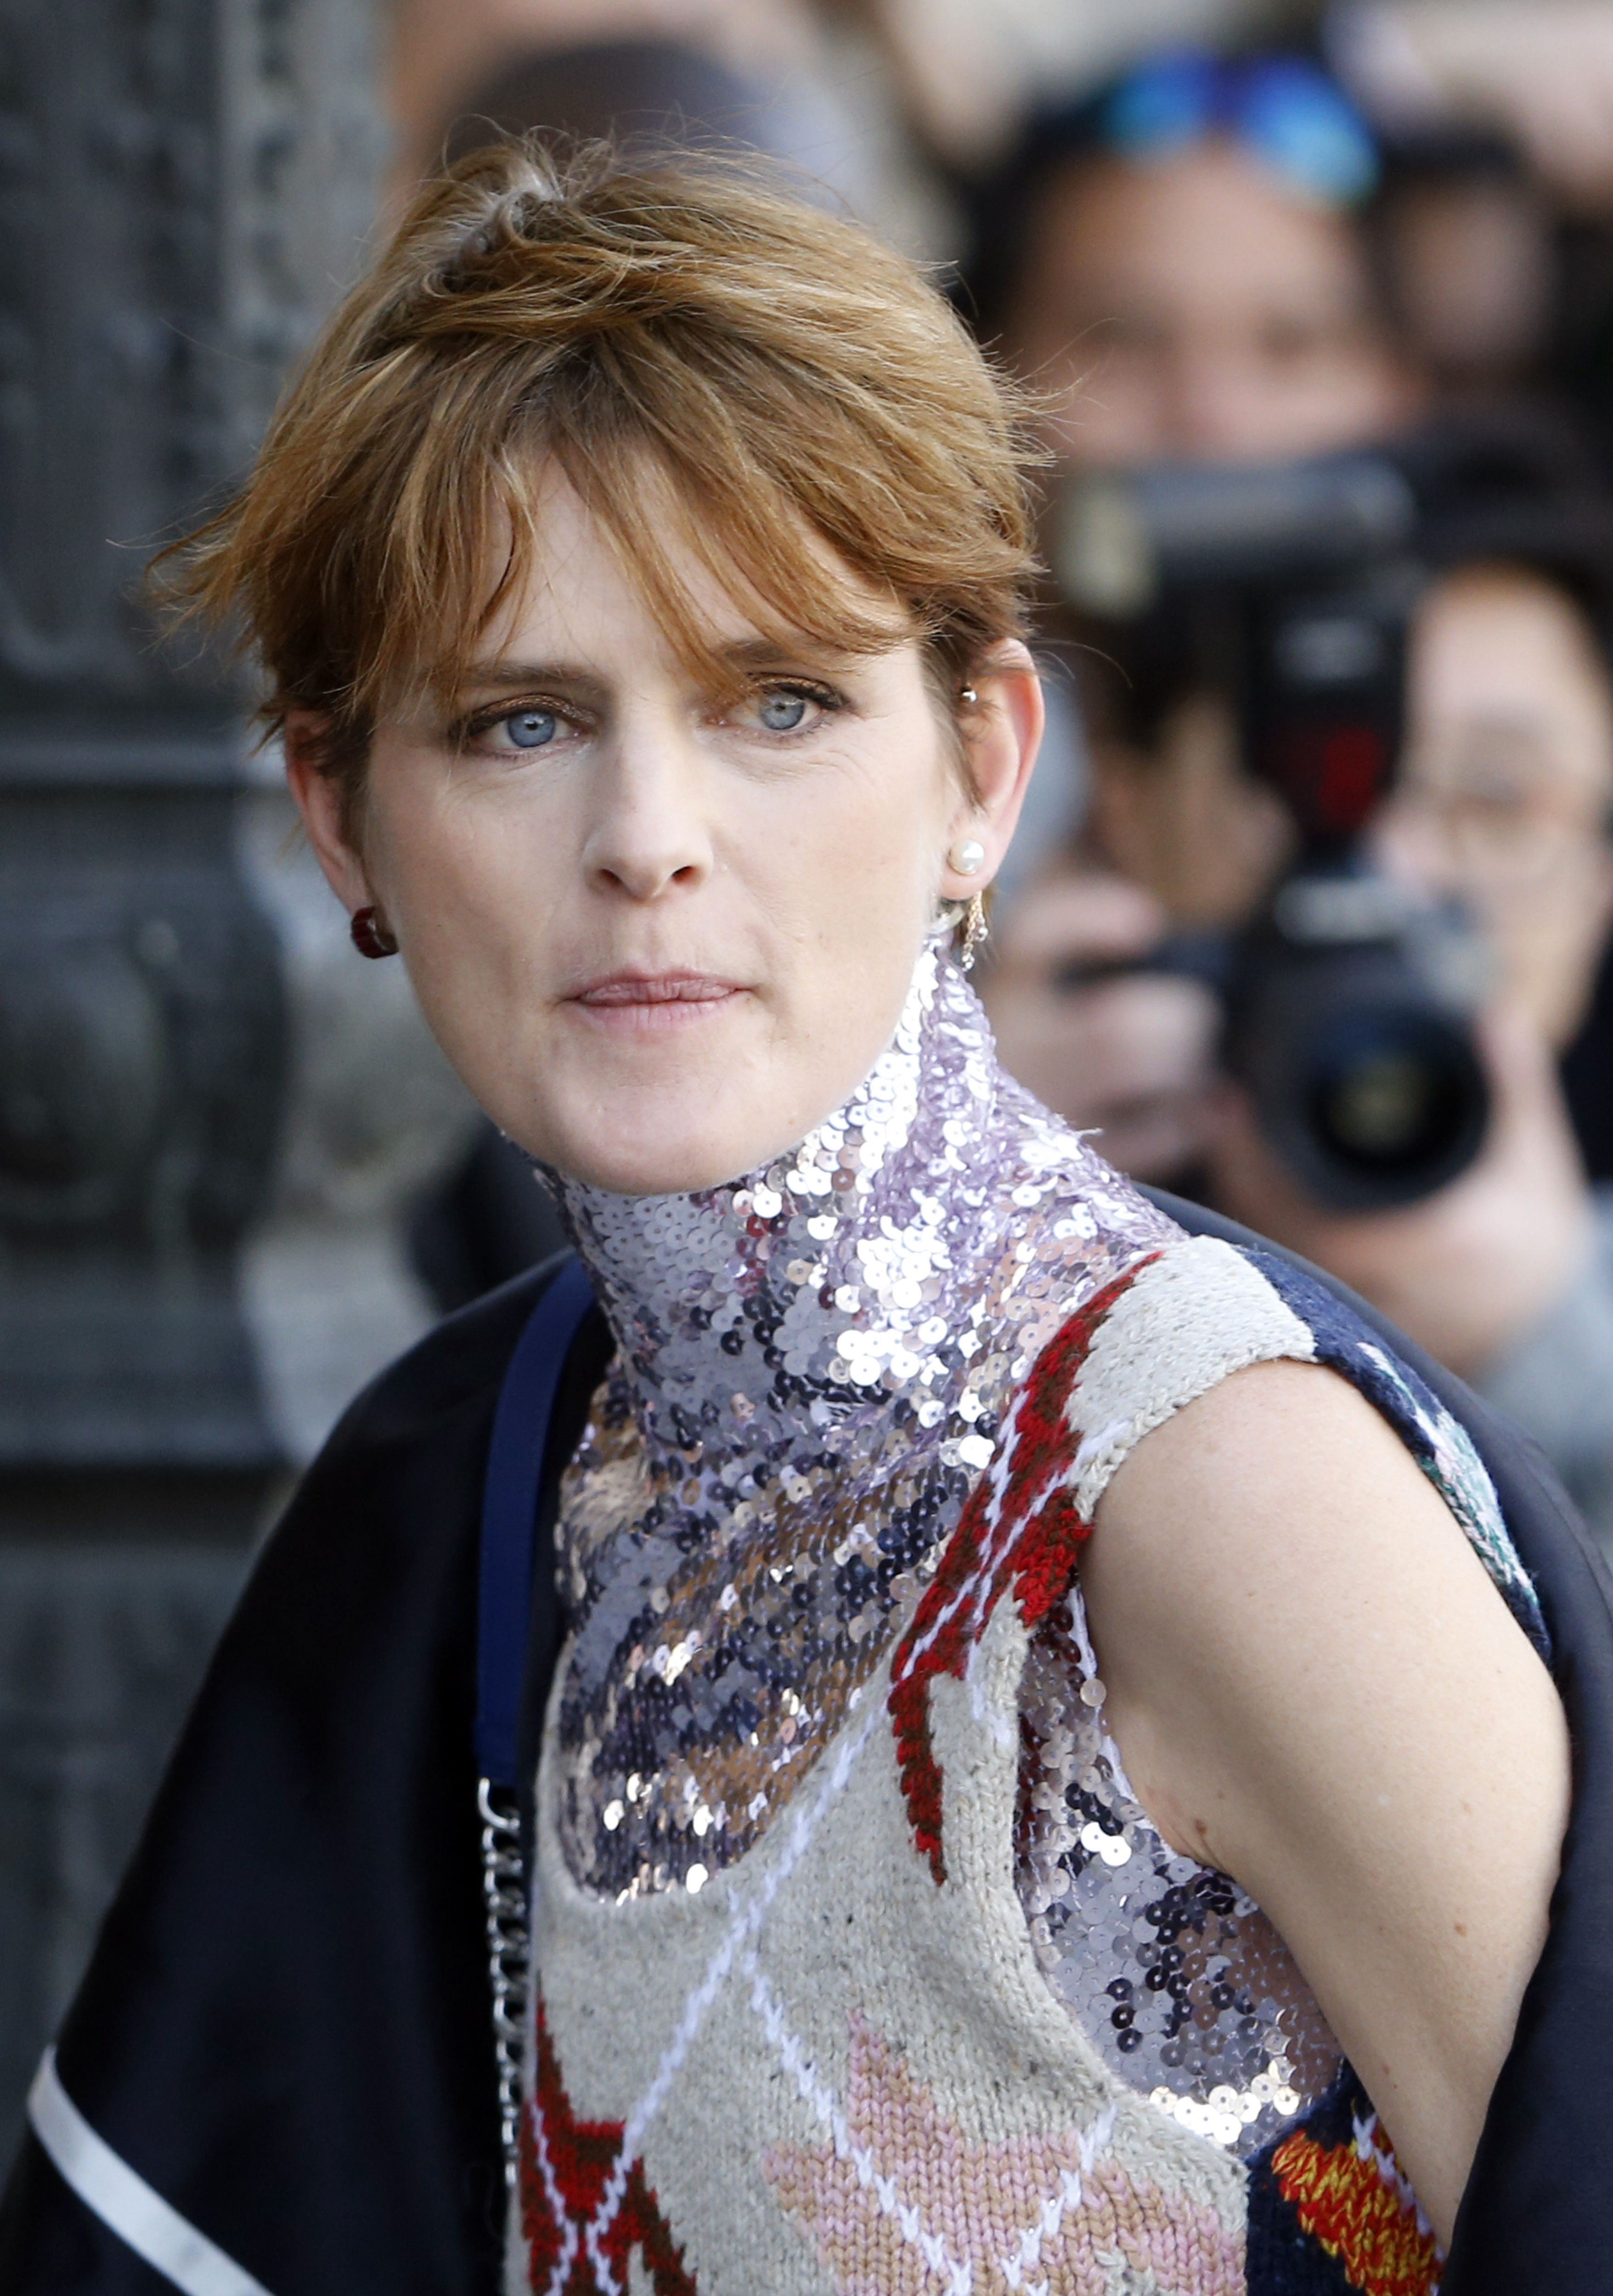 Paris (France).- (FILE) - British model Stella Tennant arrives for the presentation of the Fall/Winter 2015/16 Ready to Wear collection by Dior fashion house during the Paris Fashion Week, in Paris, France, 06 March 2015 (reissued 23 December 2020). According to media reports, Stella Tennant has died aged 50, her family confirmed. (Moda, Francia, Reino Unido) EFE/EPA/GUILLAUME HORCAJUELO *** Local Caption *** 51830785